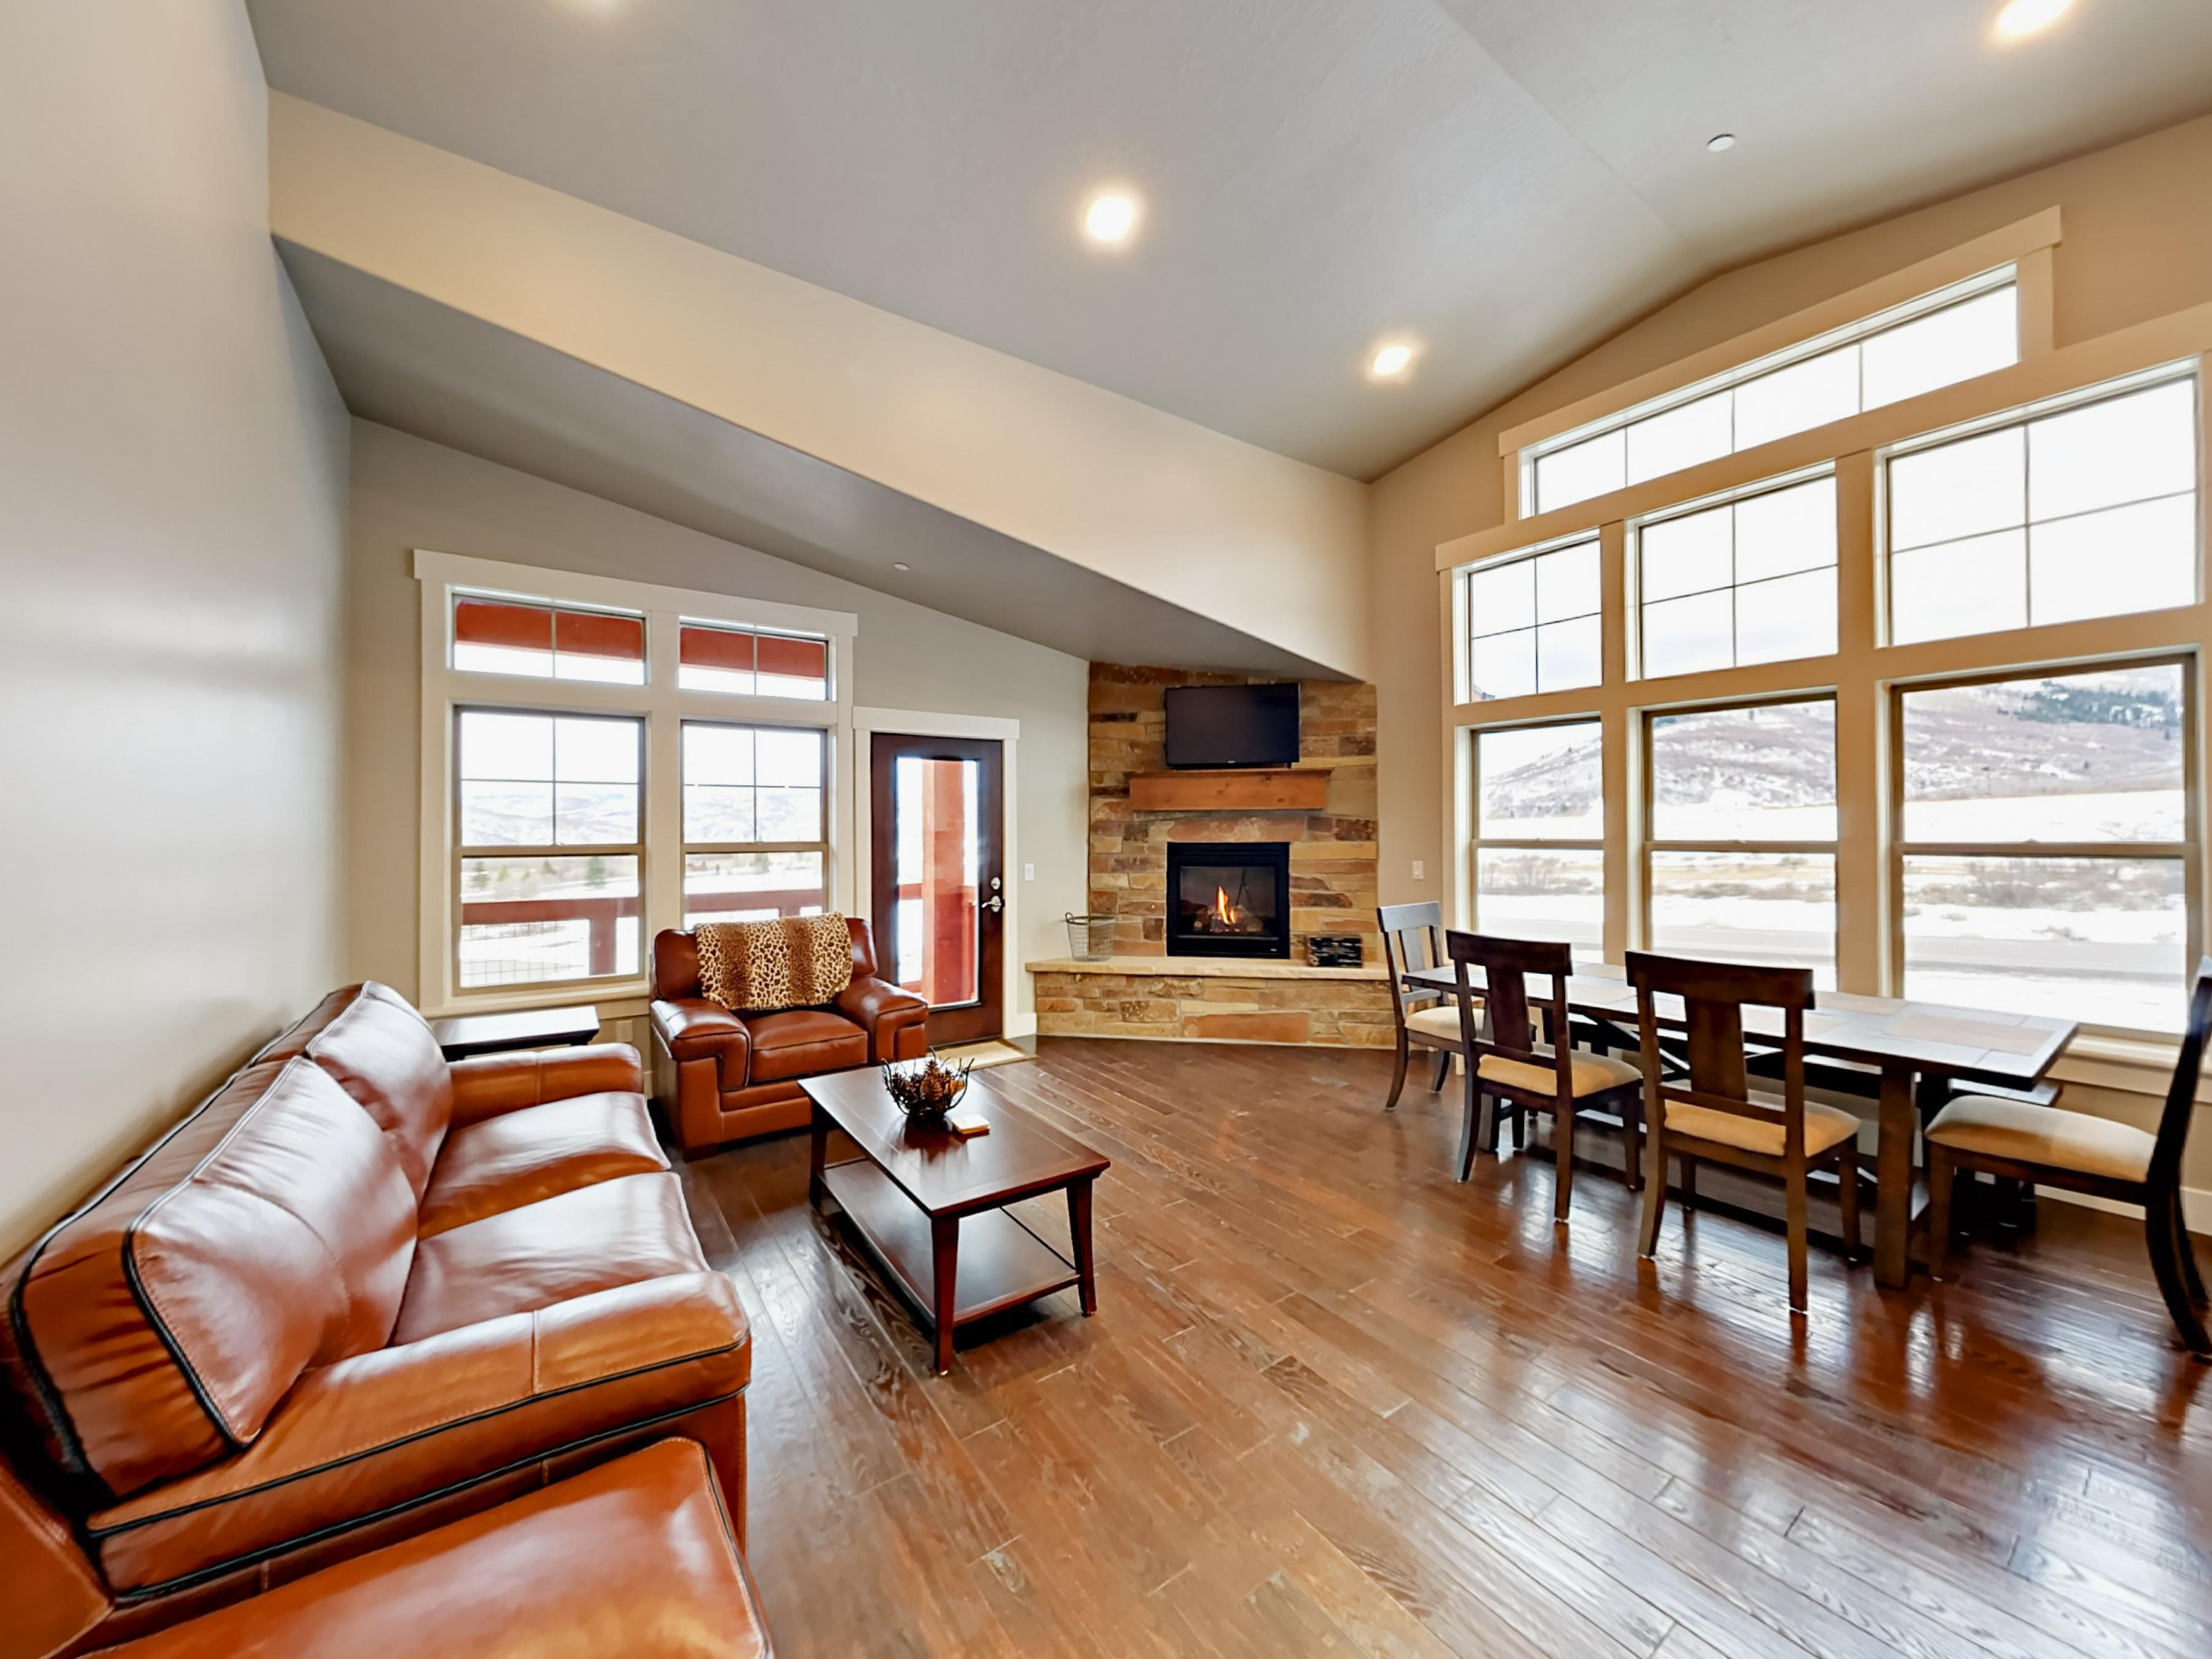 Vaulted ceilings and hardwood floors bring a contemporary feel to the open living space.